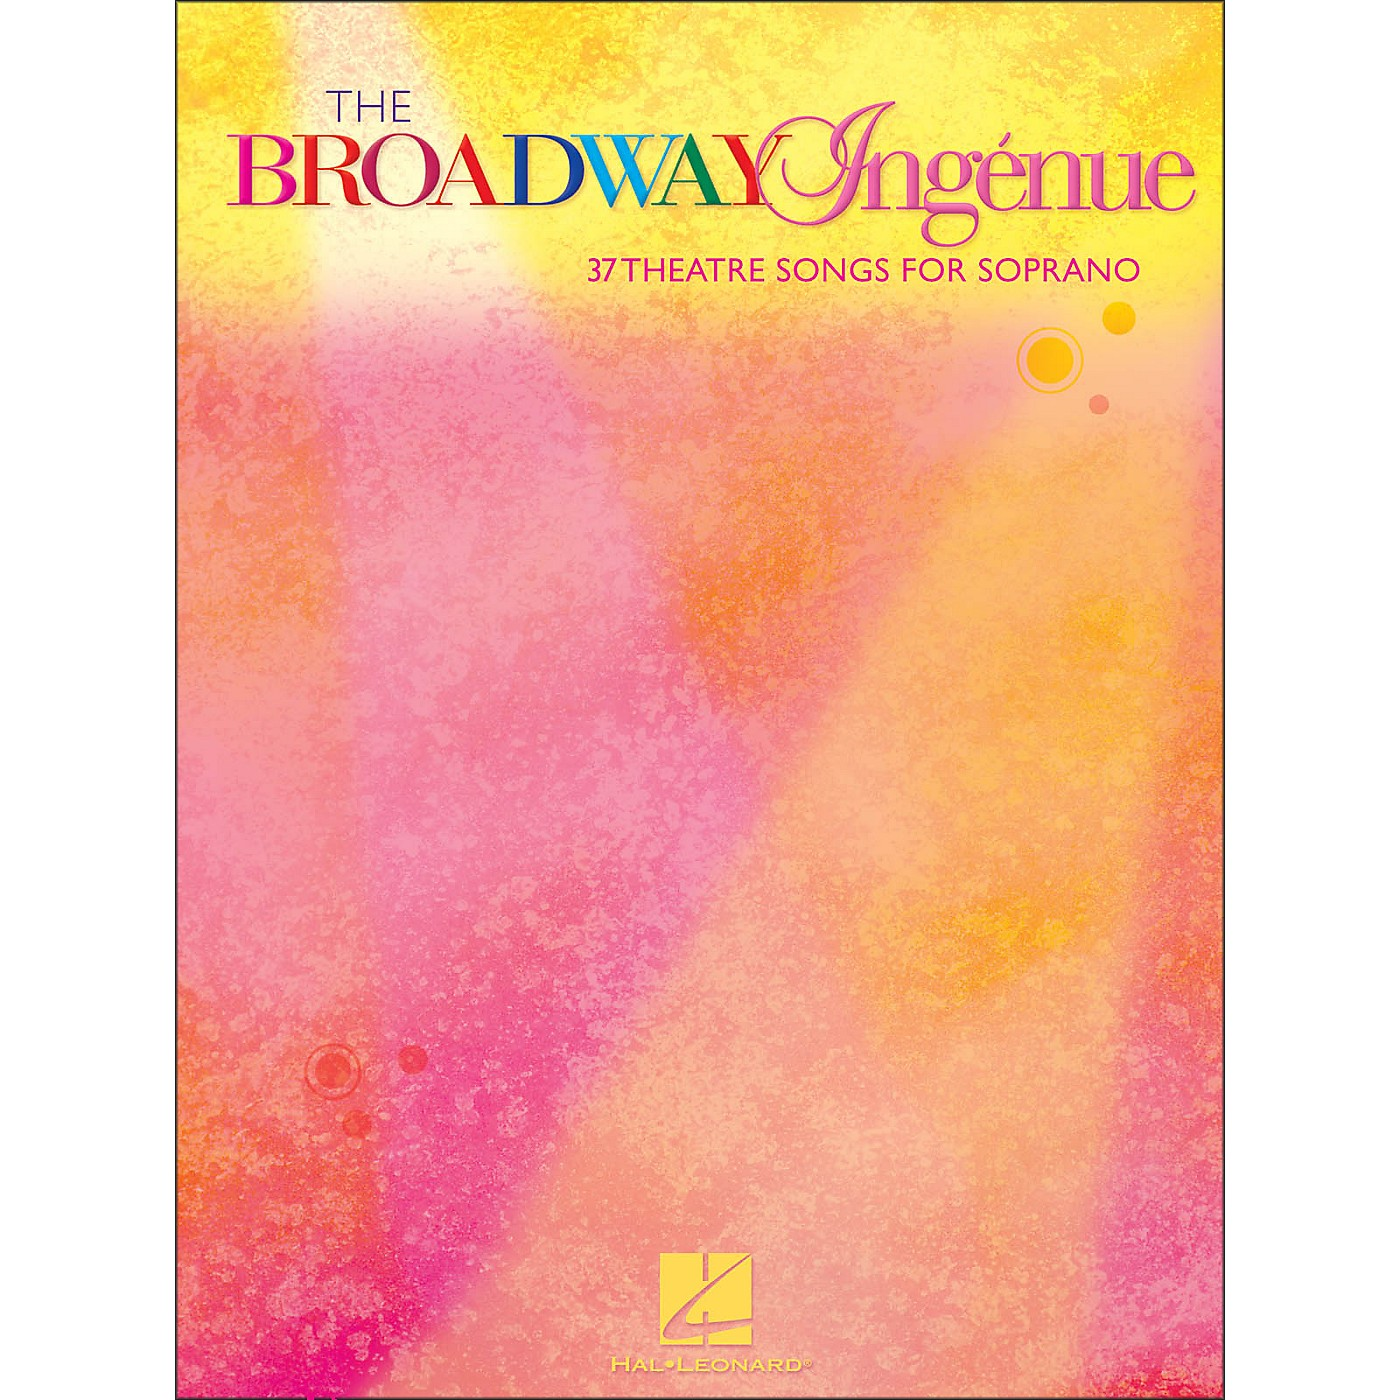 Hal Leonard The Broadway Ingenue (37 Theatre Songs for Soprano) thumbnail